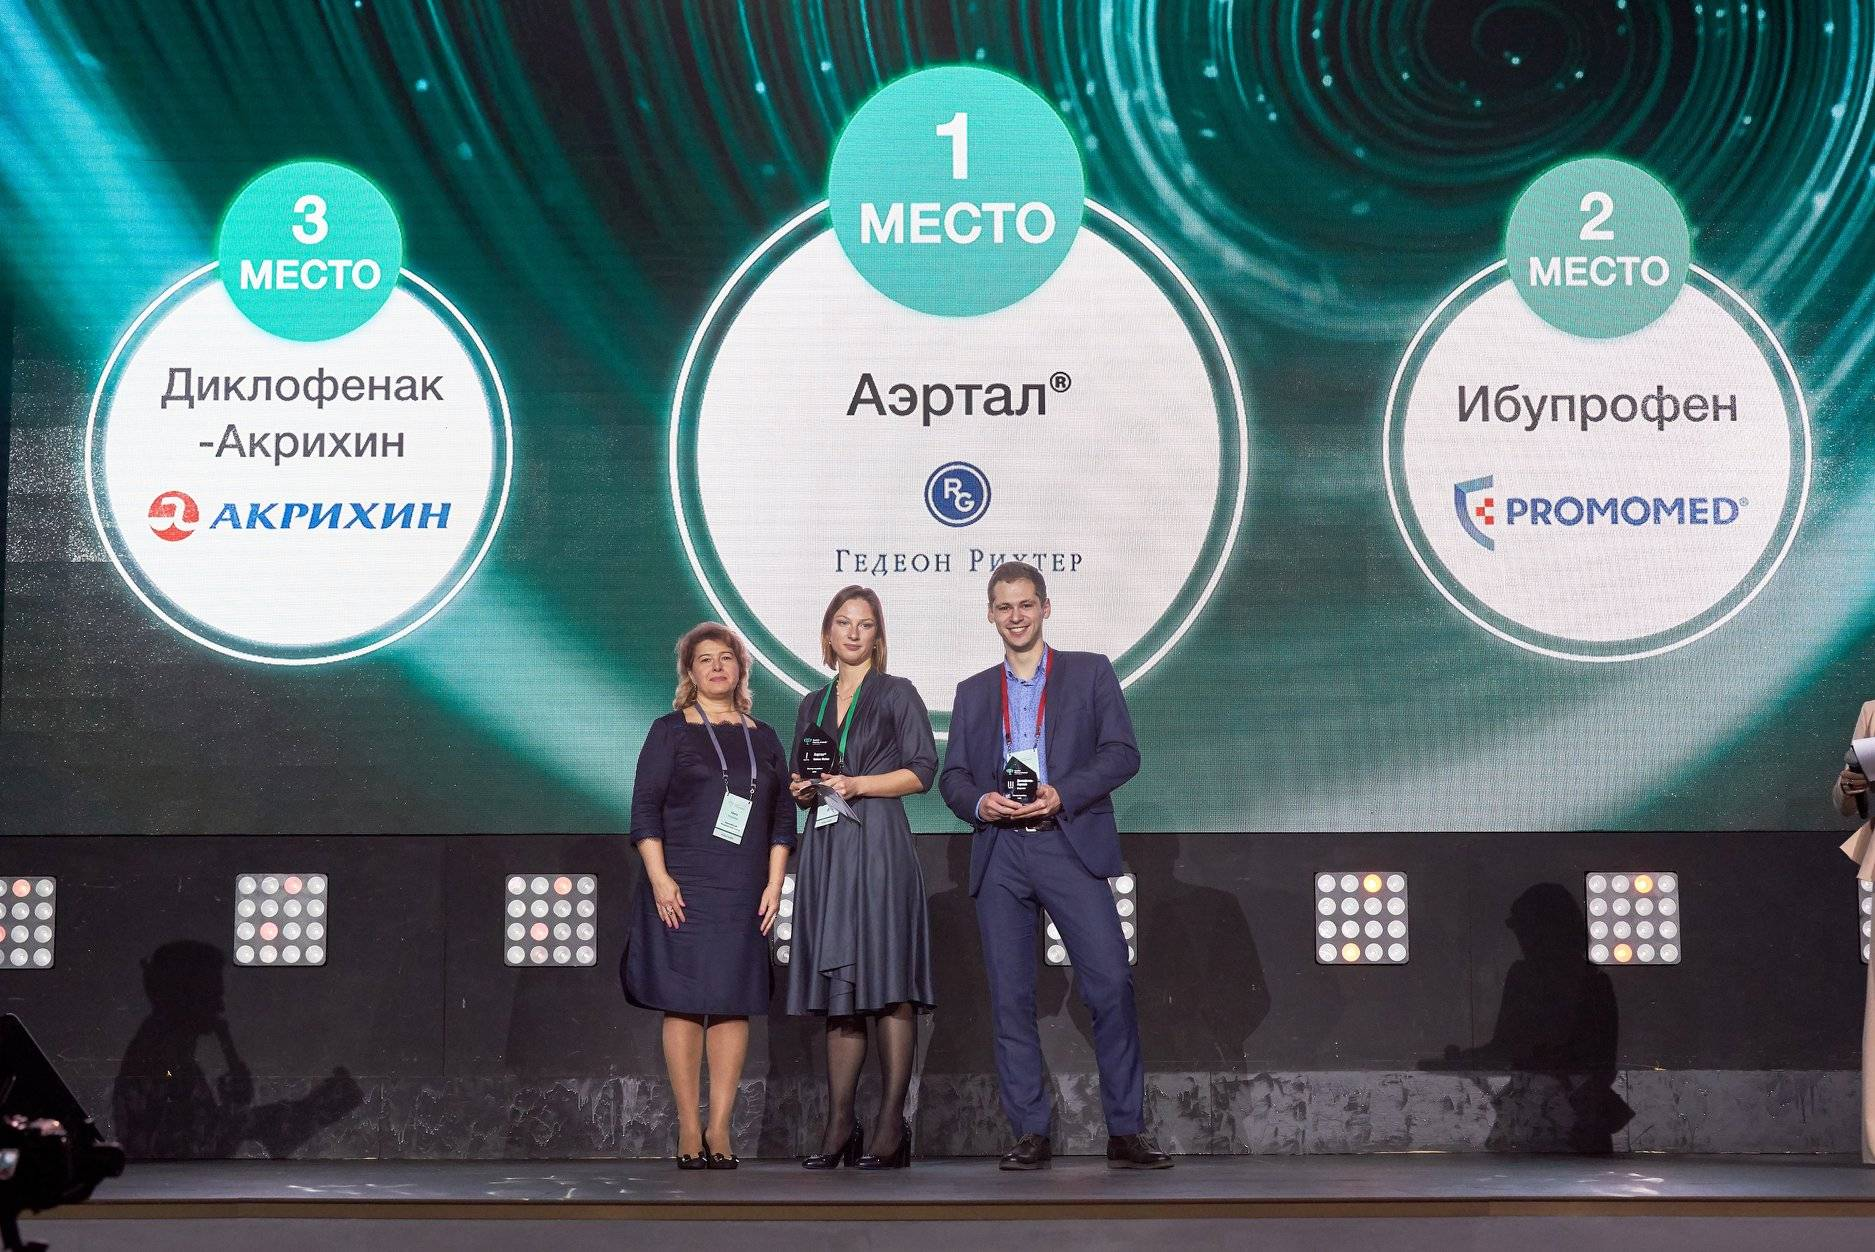 «Акрихин» на Russian Pharm Awards 2019